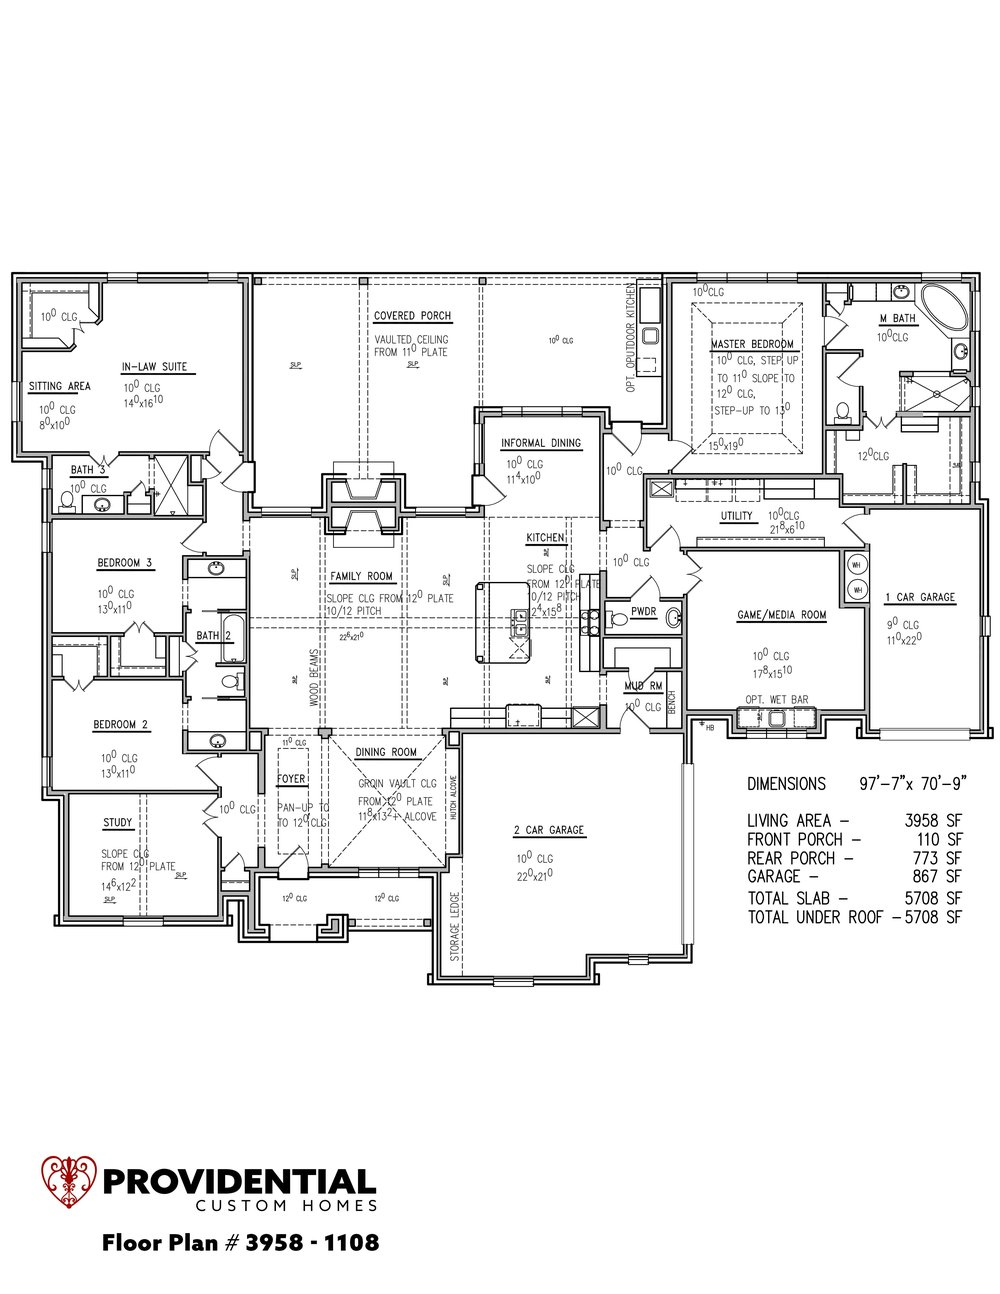 The FLOOR PLAN #3958 - 1108.jpg